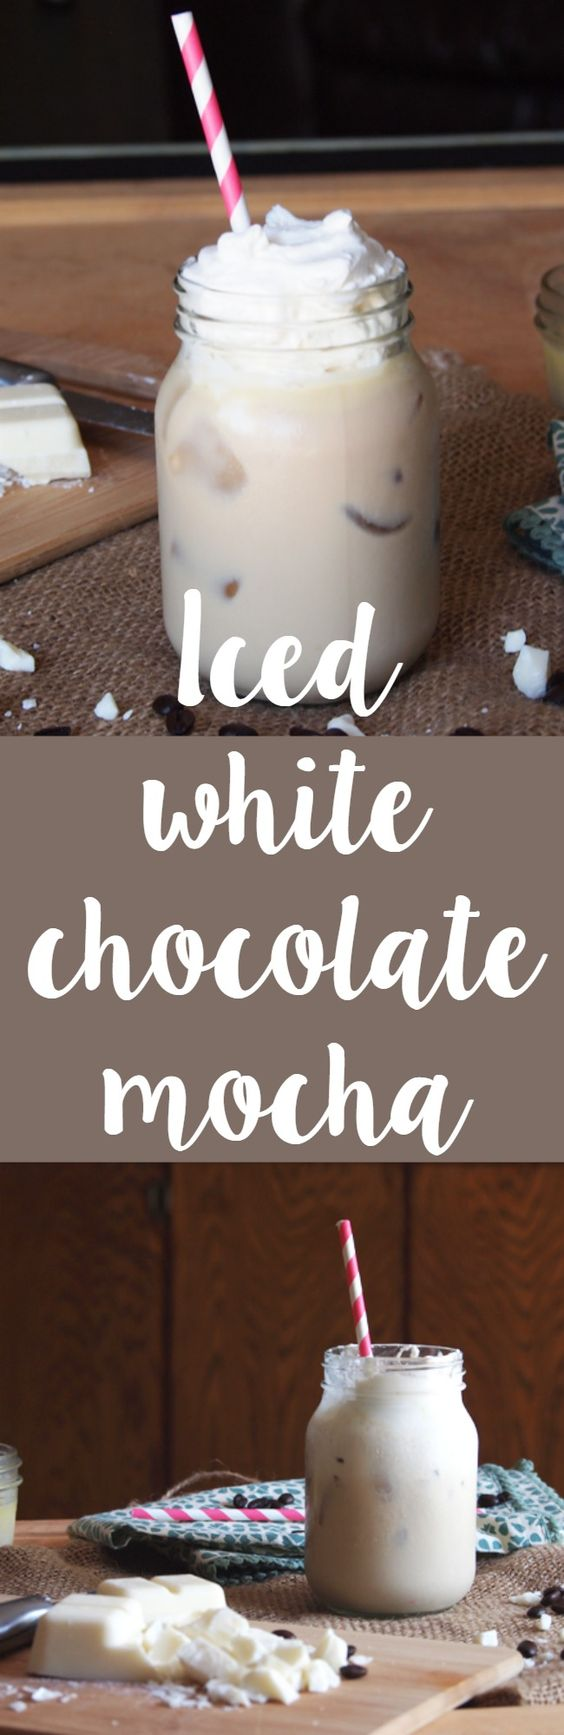 Iced white chocolate mocha | Recipe | Homemade, Mocha recipe and Mocha